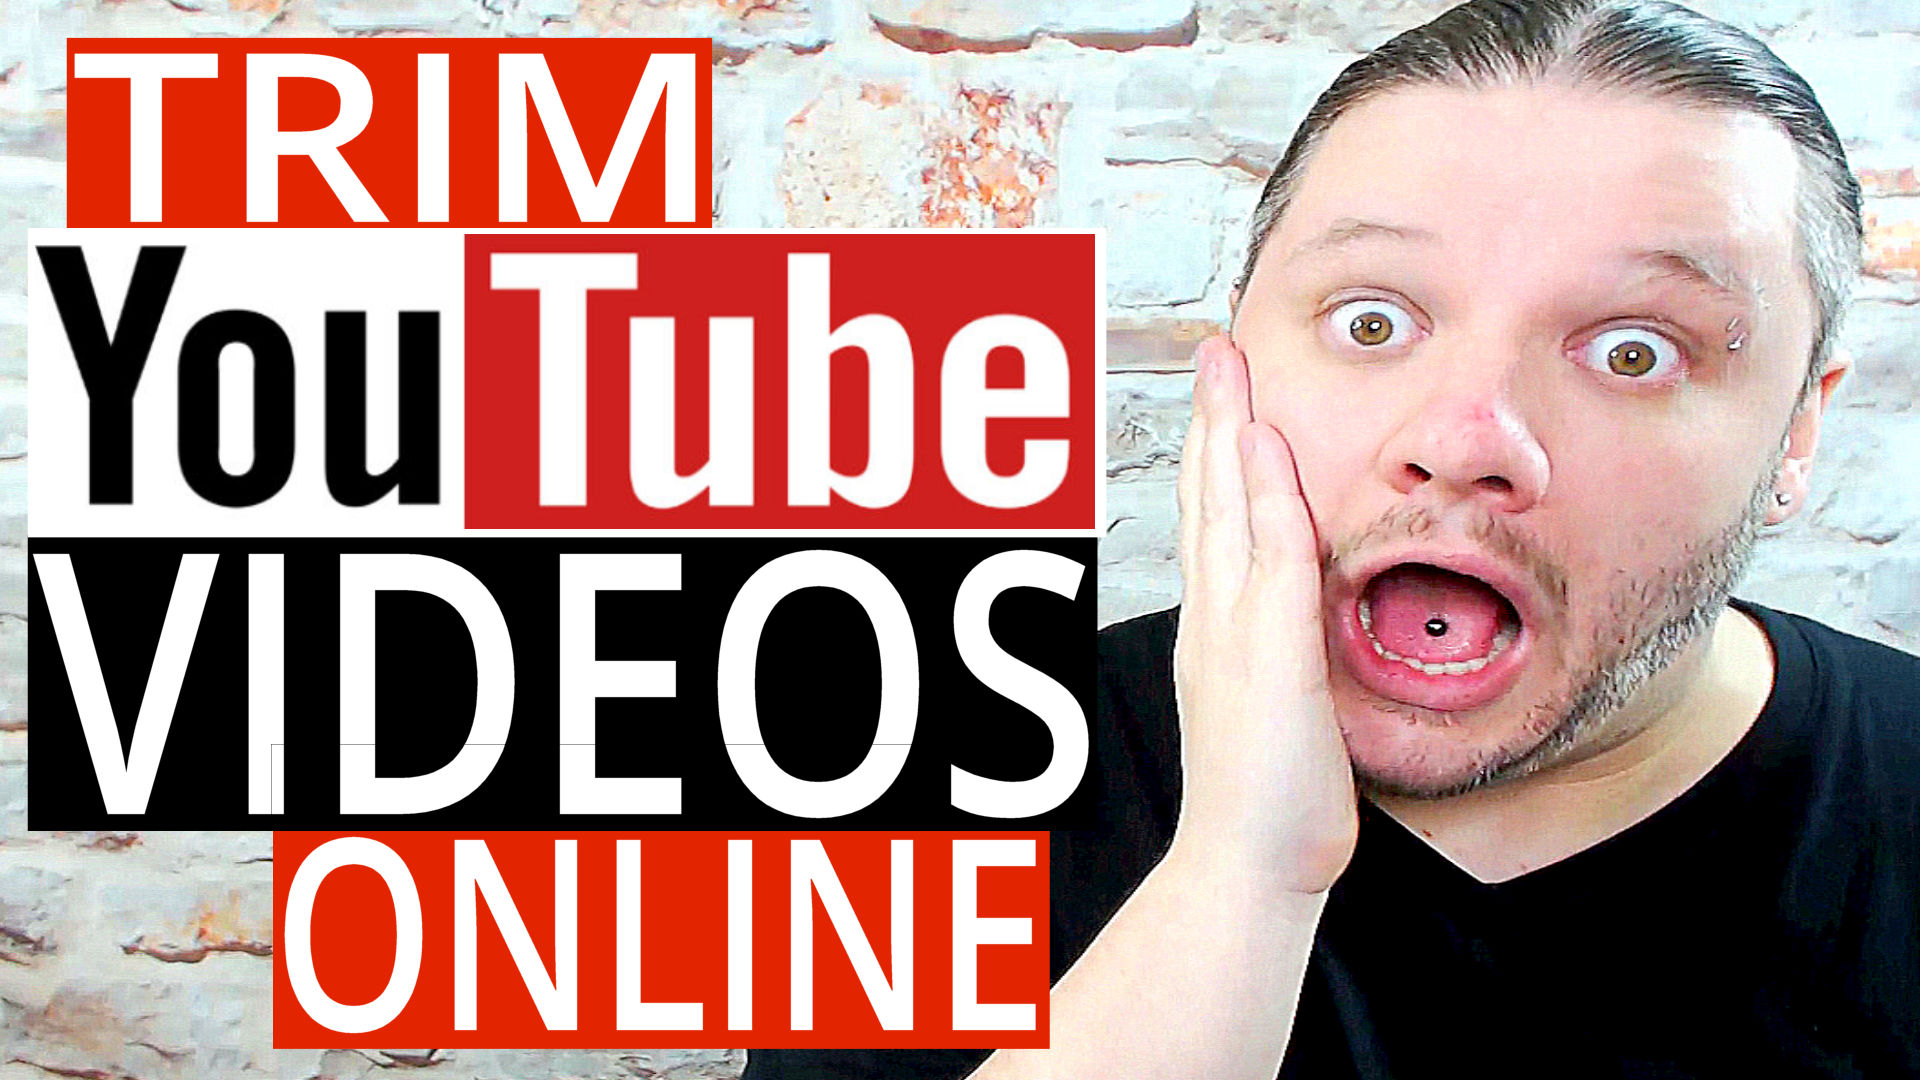 How To Trim A YouTube Video Online,trim video,trim youtube videos,edit videos on youtube,trim youtube videos online,trim youtube videos online free,how to trim youtube videos 2018,how to edit uploaded youtube video,edit youtube videos,edit youtube videos online,youtube video editor 2018,trim a youtube video,how to trim youtube videos,how to trim youtube videos online,how to trim slice and edit your youtube videos,trim youtube published video,slice youtube videos